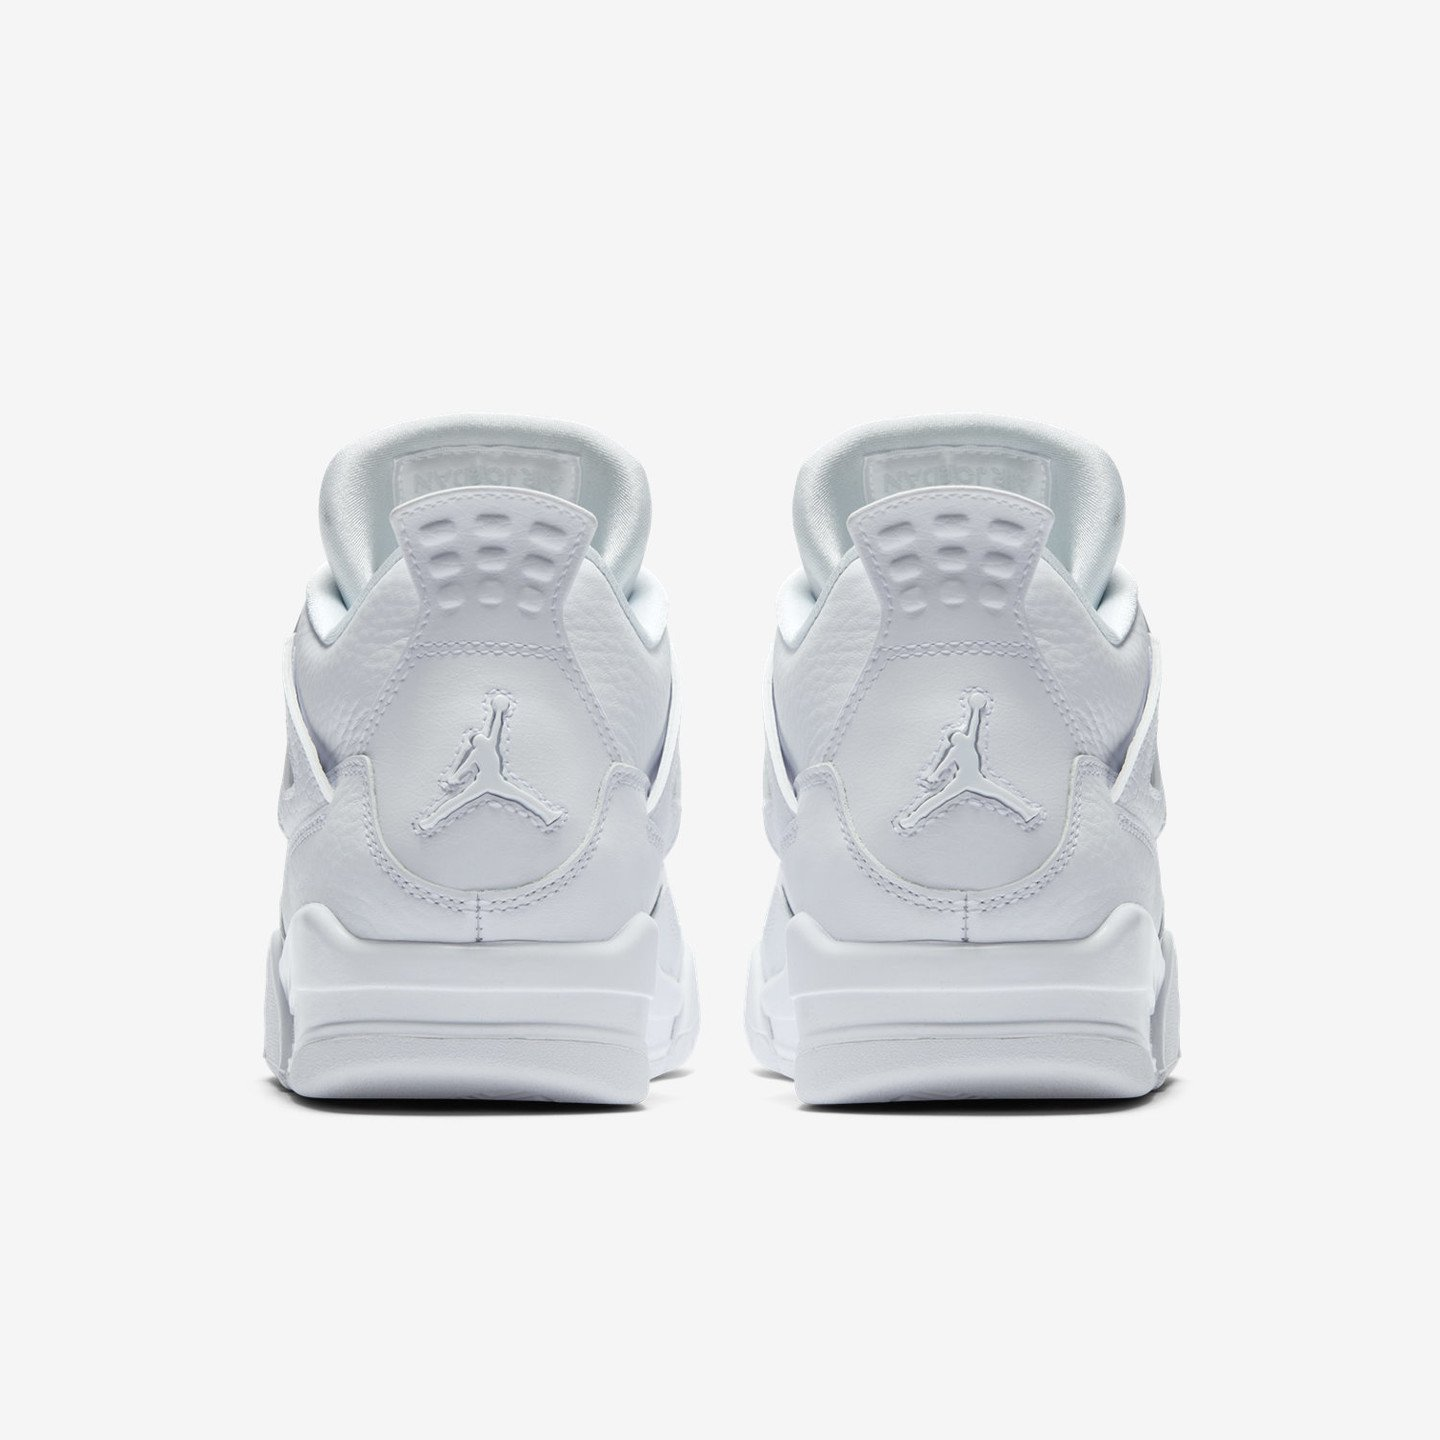 Jordan Air Jordan 4 Retro GS 'Pure Money' White / Silver / Pure Platinum 408452-100